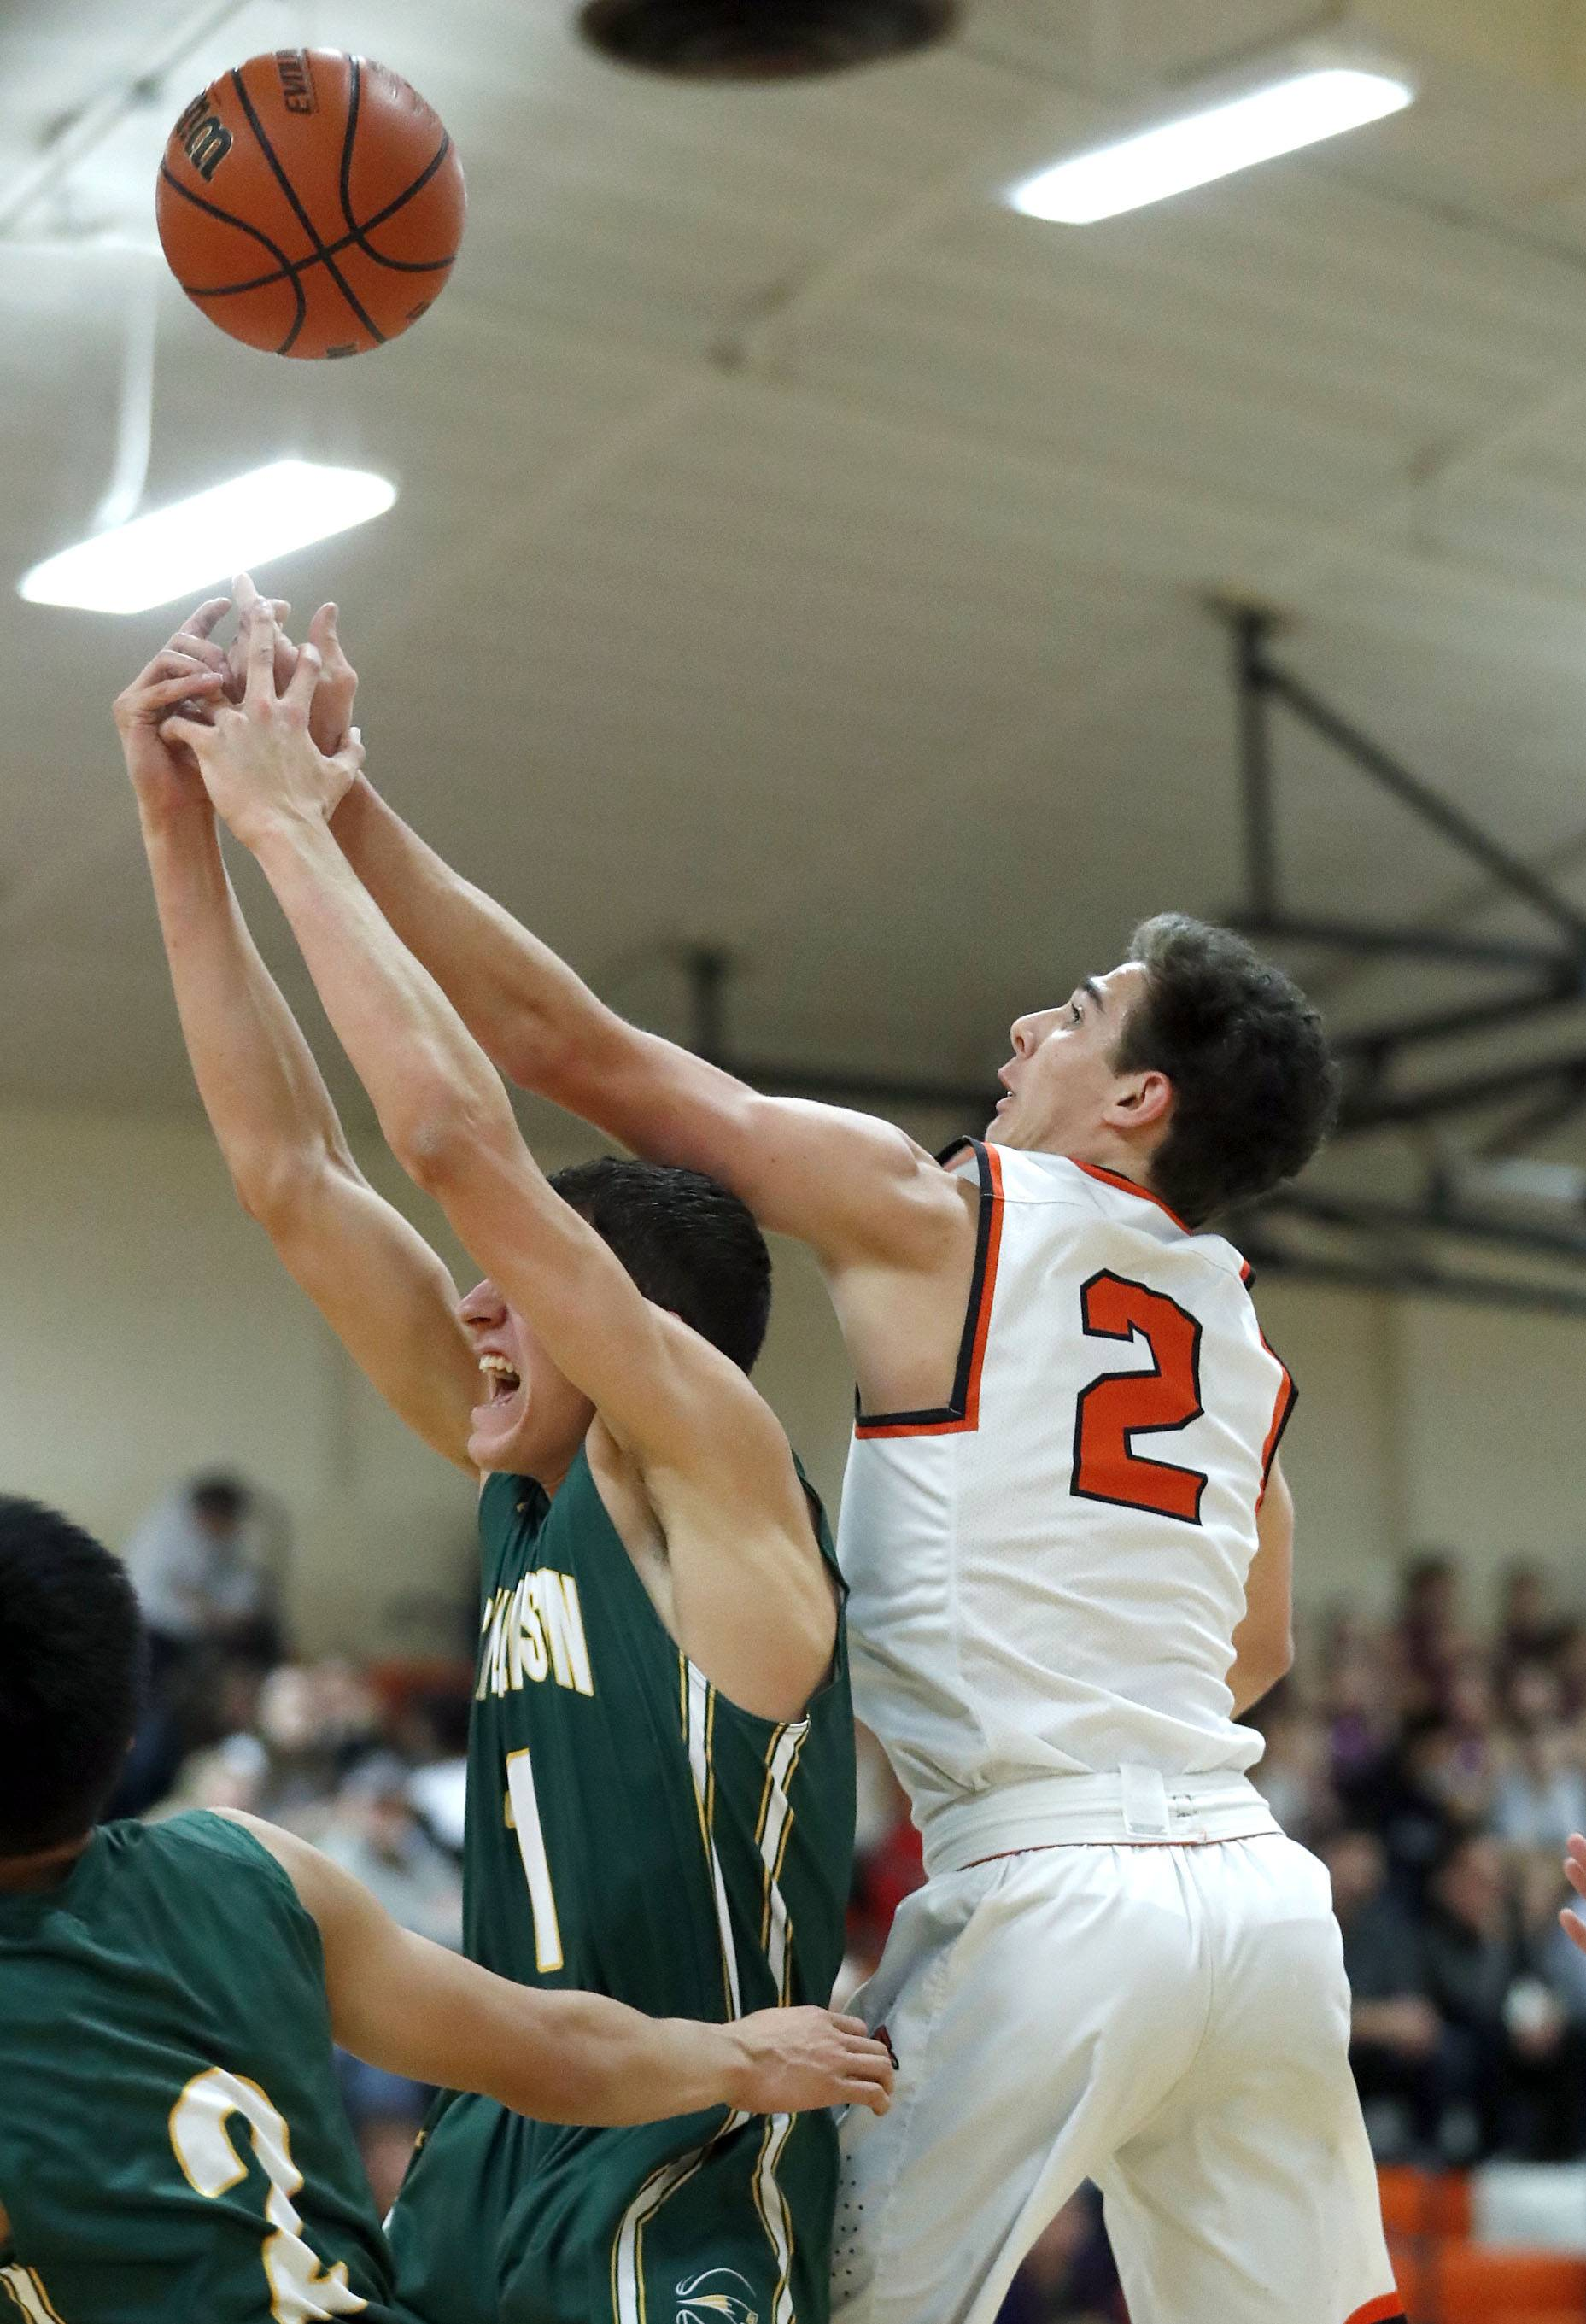 Libertyville's Brian Wilterdink (2) and Stevenson's John Ittounas battle for a rebound during their game Tuesday night in Libertyville.